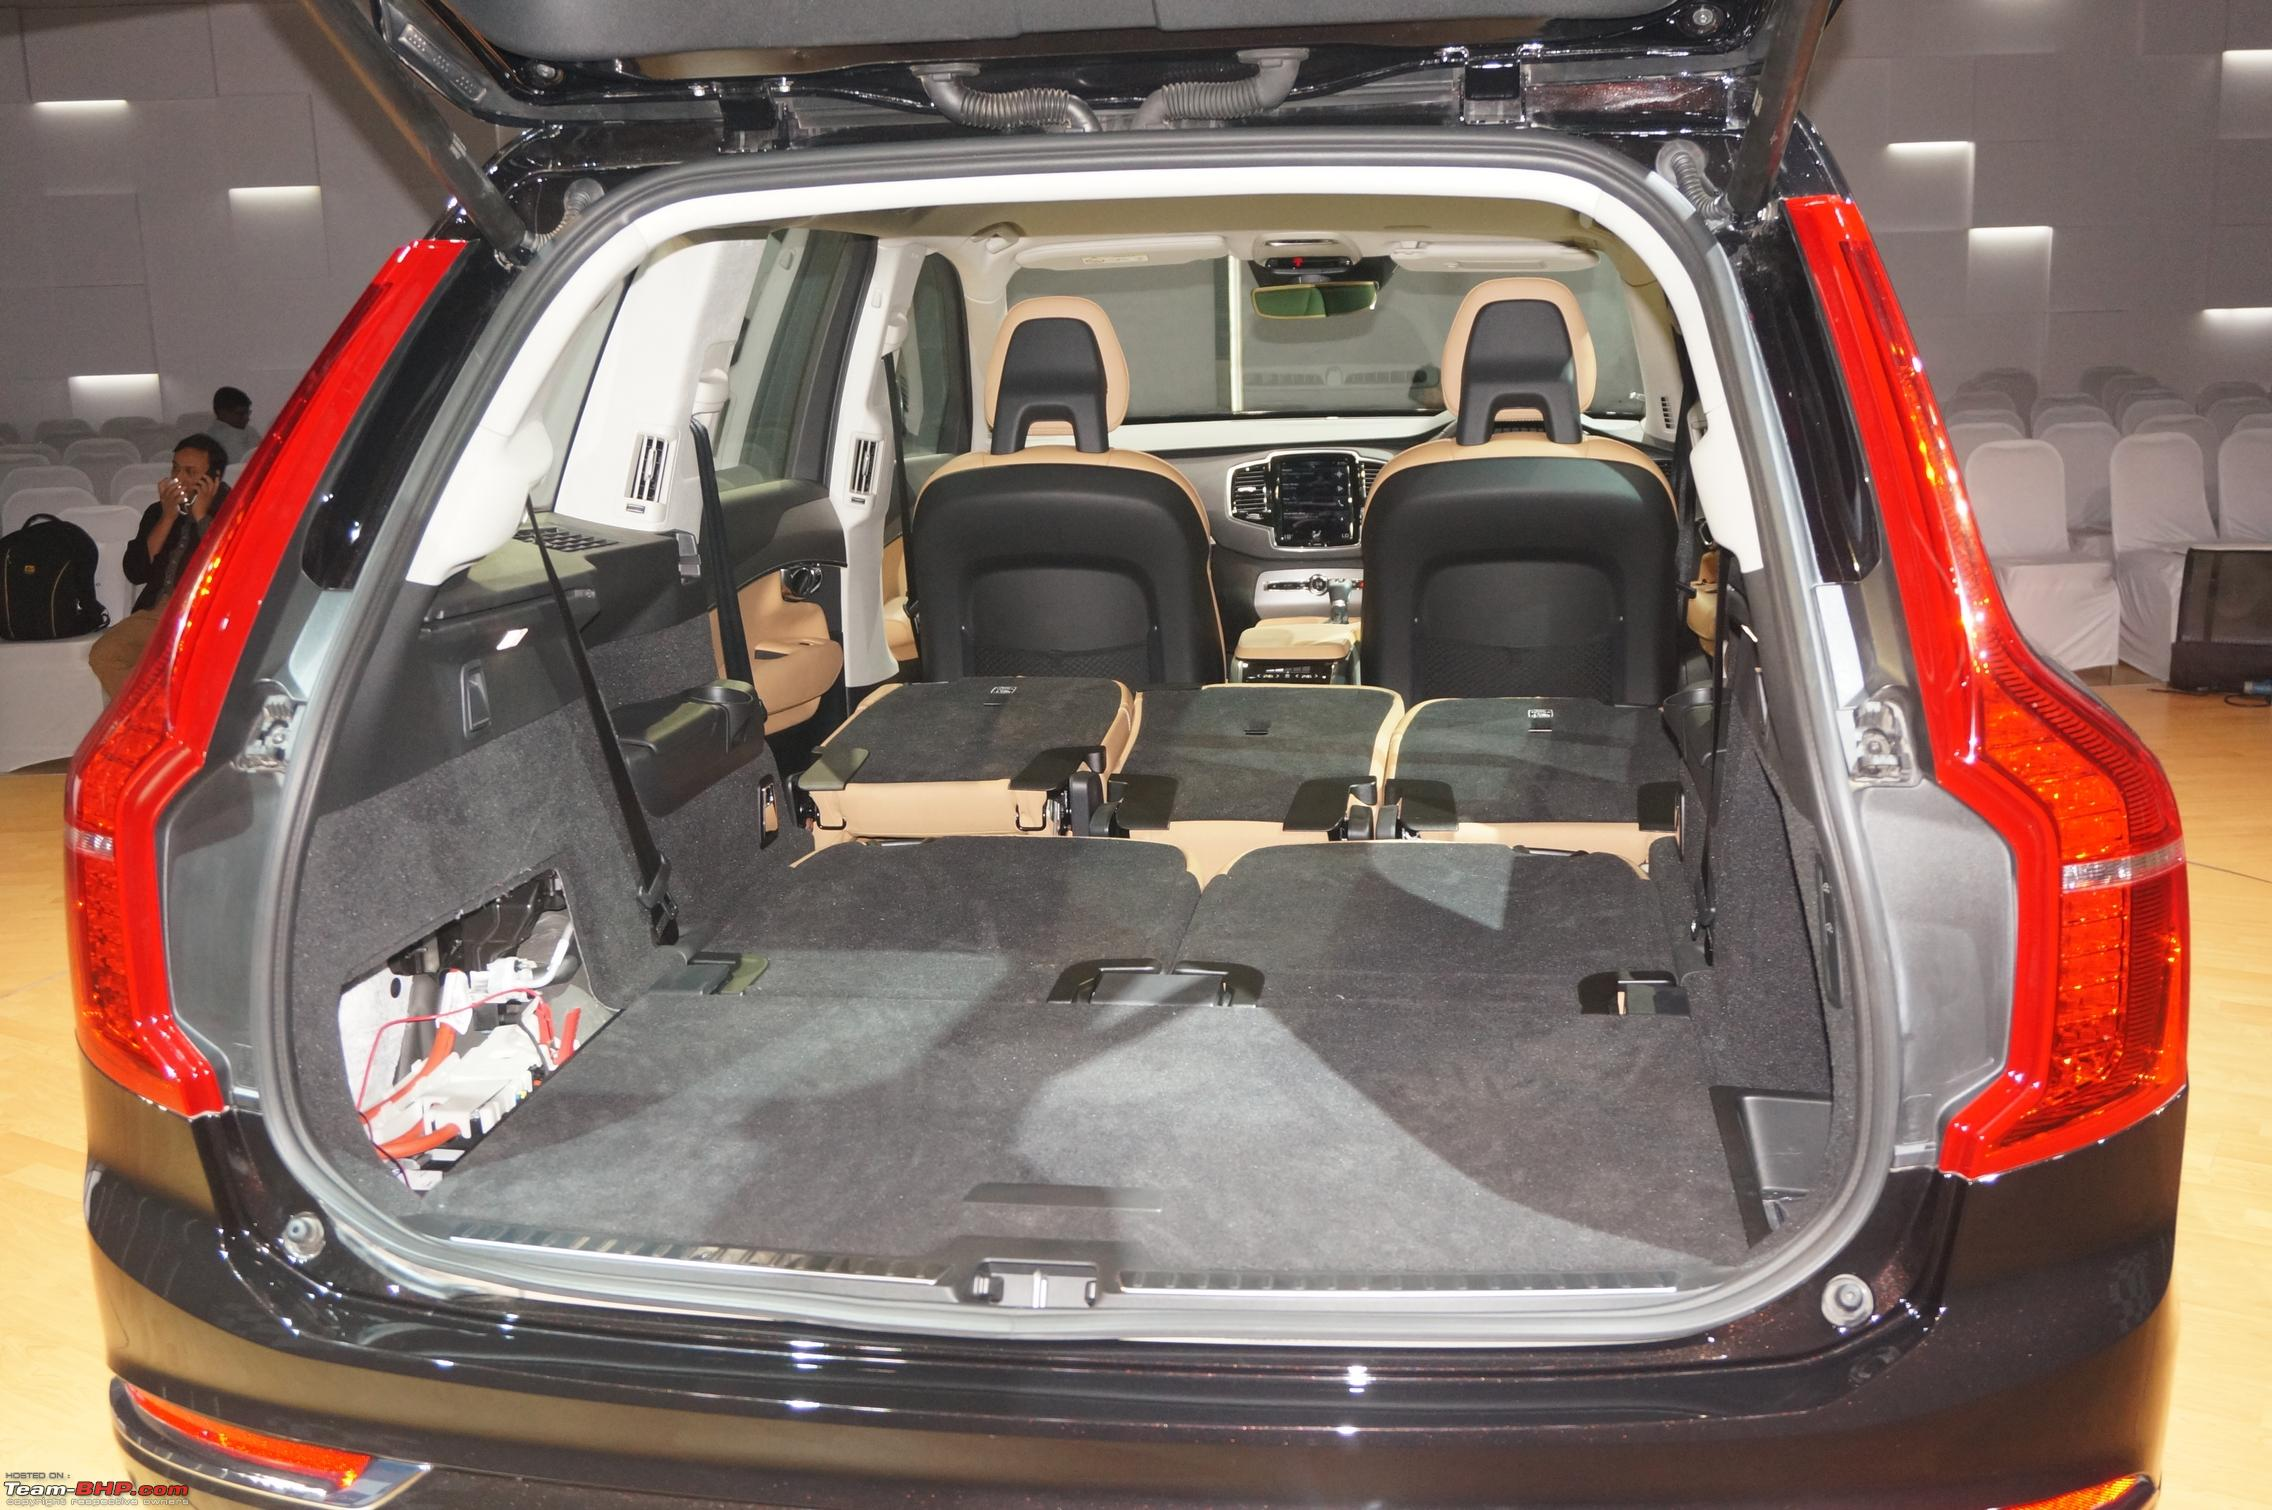 volvo xc90 launched in india at rs 64 9 lakhs team bhp. Black Bedroom Furniture Sets. Home Design Ideas